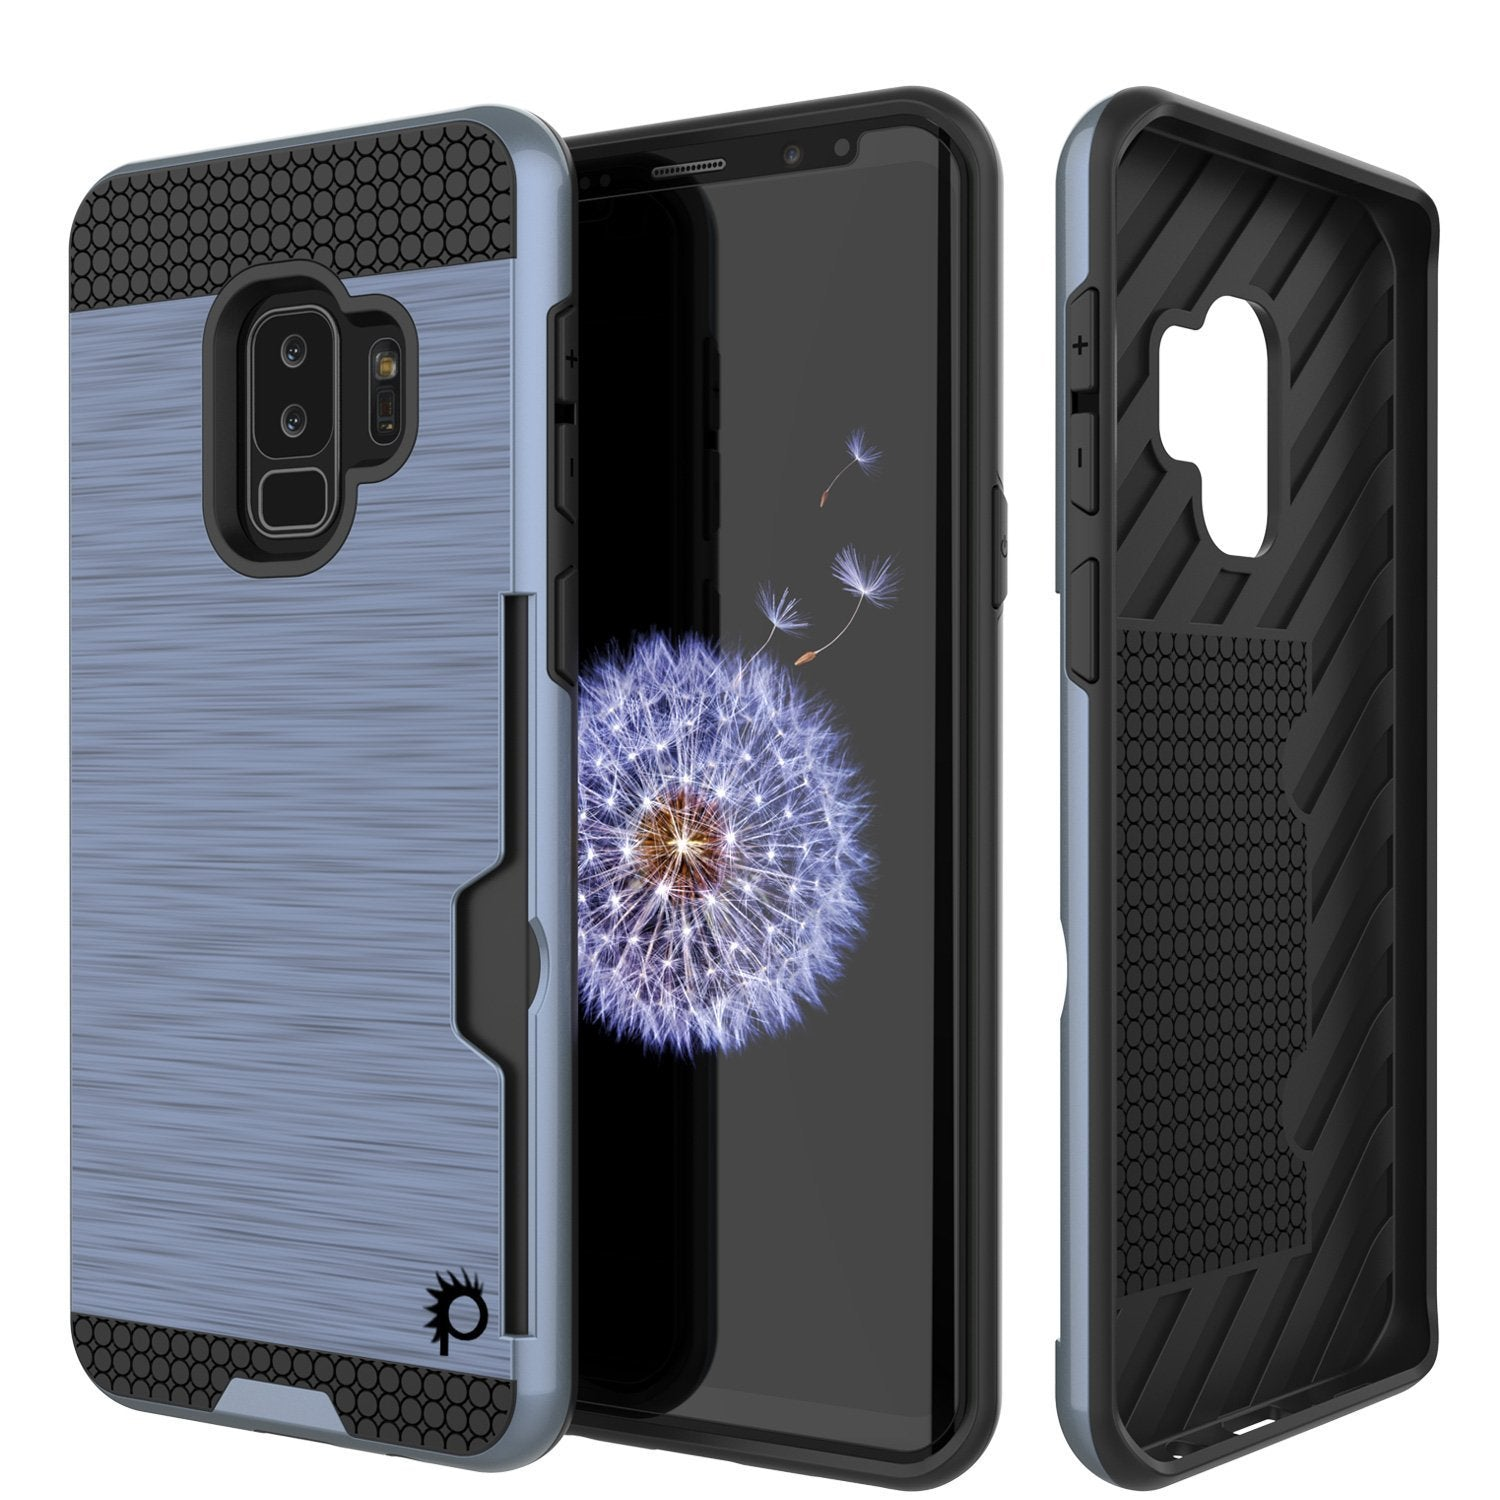 Galaxy S9 Plus Case, PUNKcase [SLOT Series] [Slim Fit] Dual-Layer Armor Cover w/Integrated Anti-Shock System, Credit Card Slot [Navy]